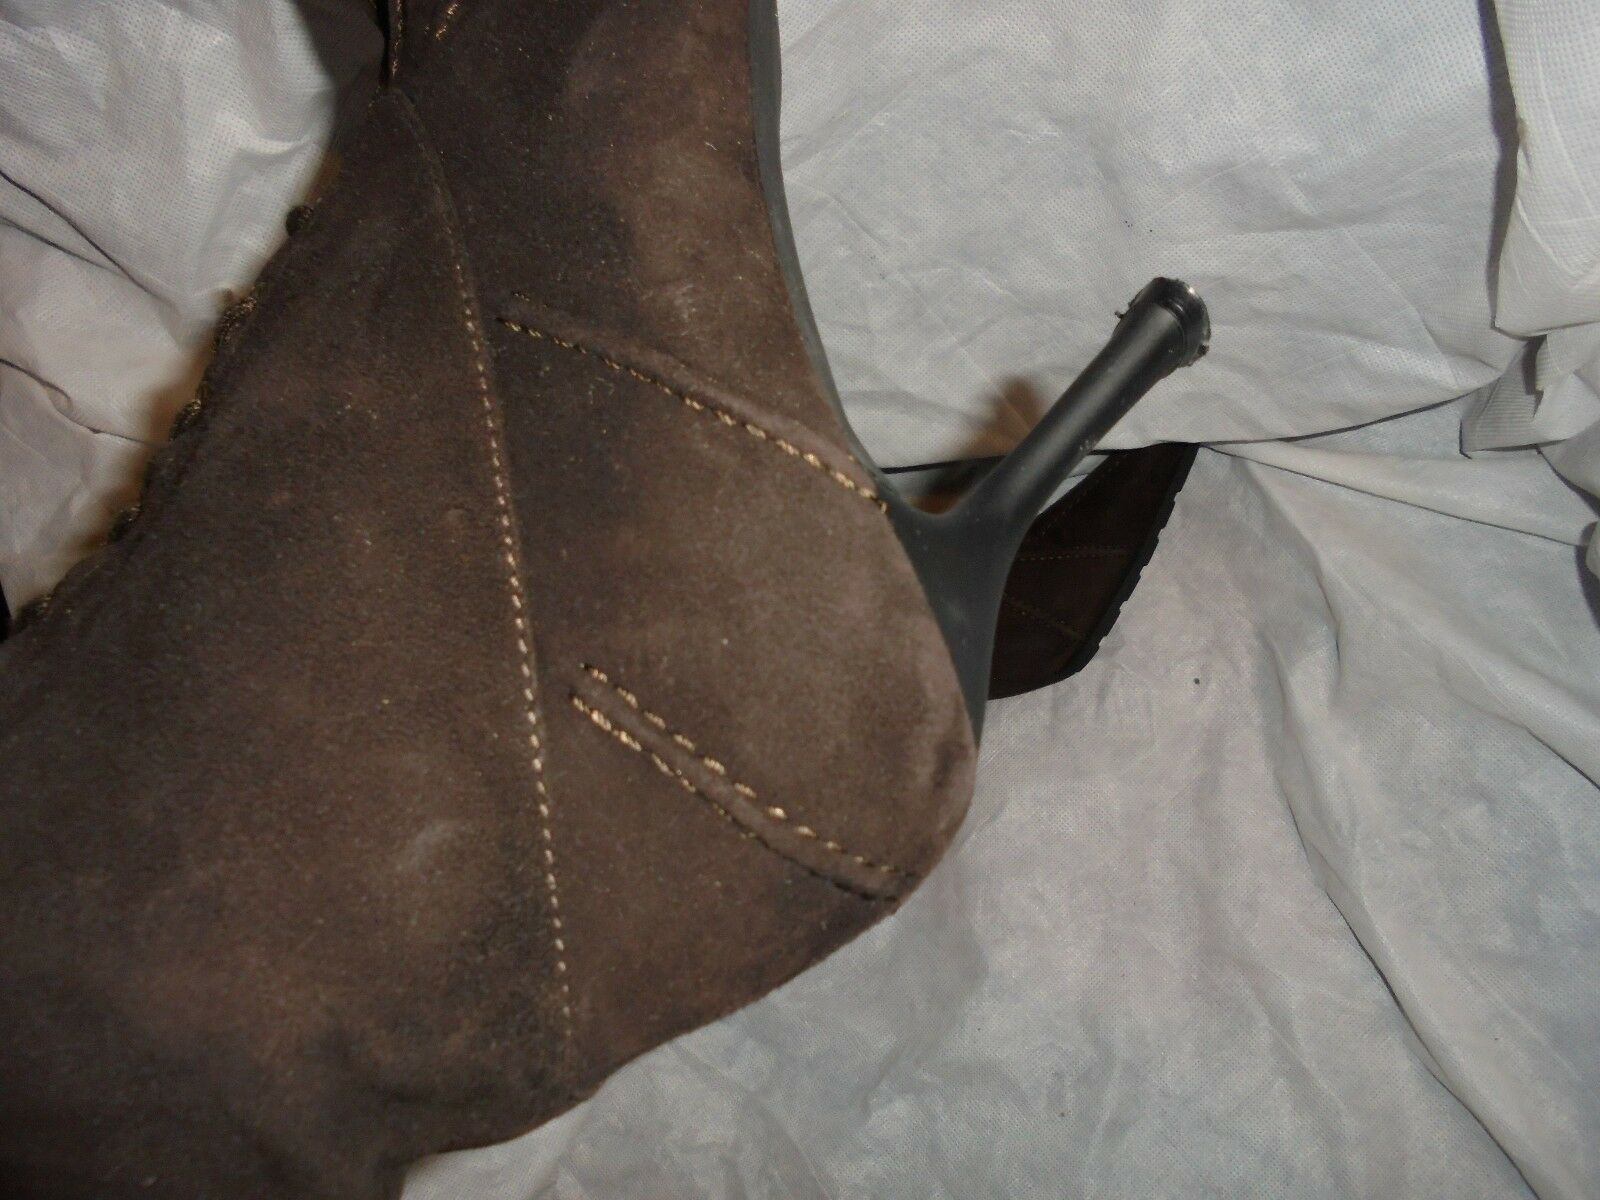 STUART WEITZMAN WOMEN BROWN SUEDE SUEDE BROWN LEATHER LACE/ZIP ANKLE BOOT SIZE UK 5.5 US 8.5 fafafd